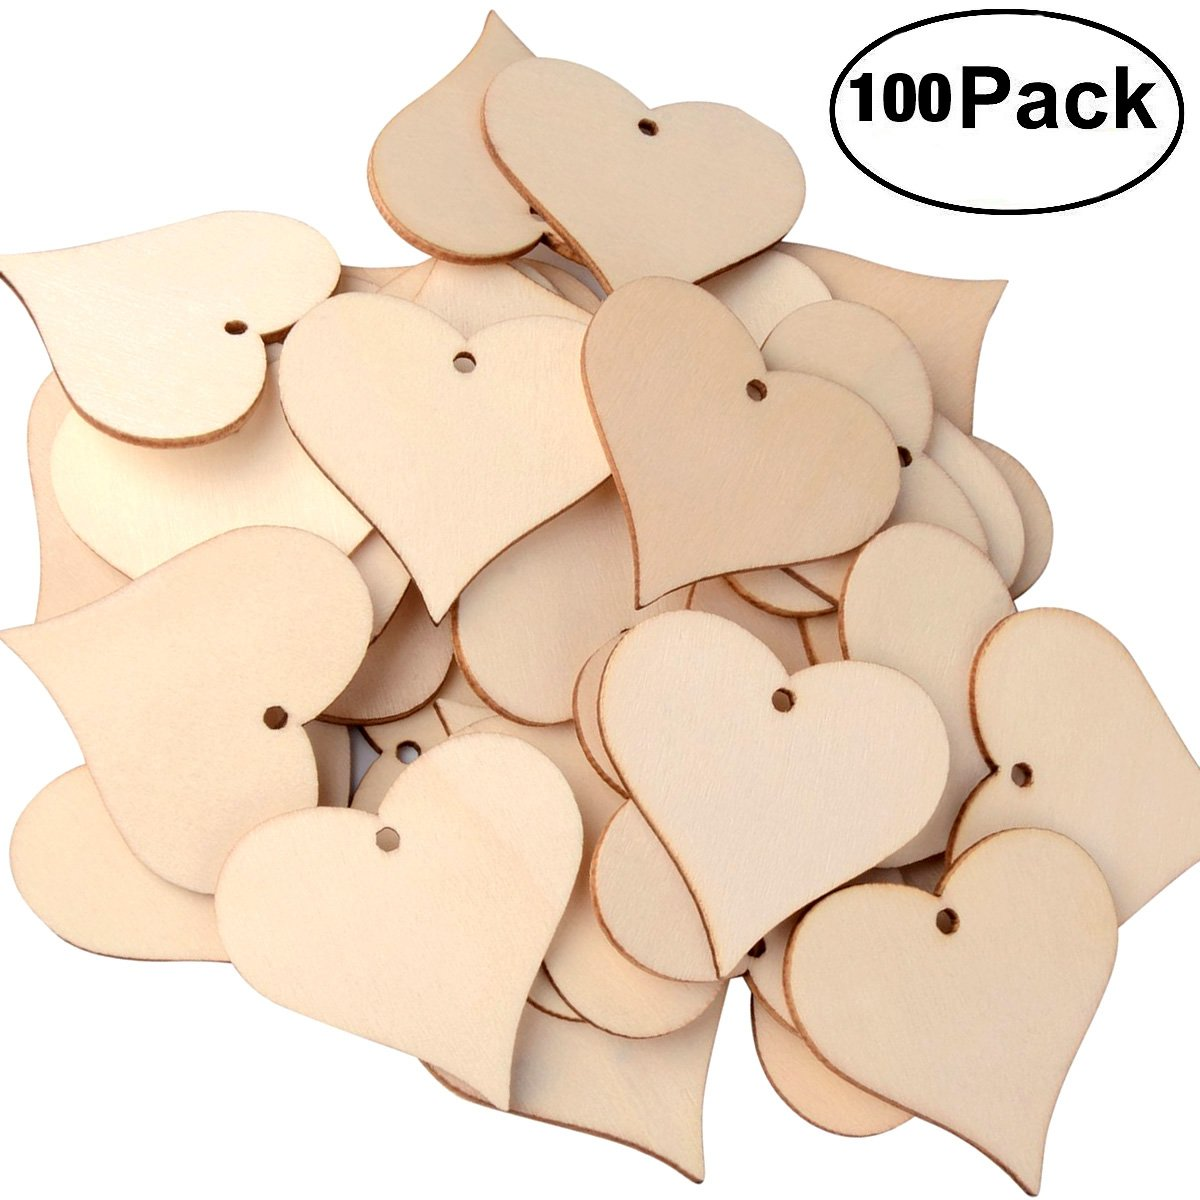 Natural Wood Slices Craft Wood kit Unfinished Predrilled with Hole Wooden Circles Great for Arts and Crafts Christmas Ornaments DIY Crafts 25pcs 2.8-3 inch